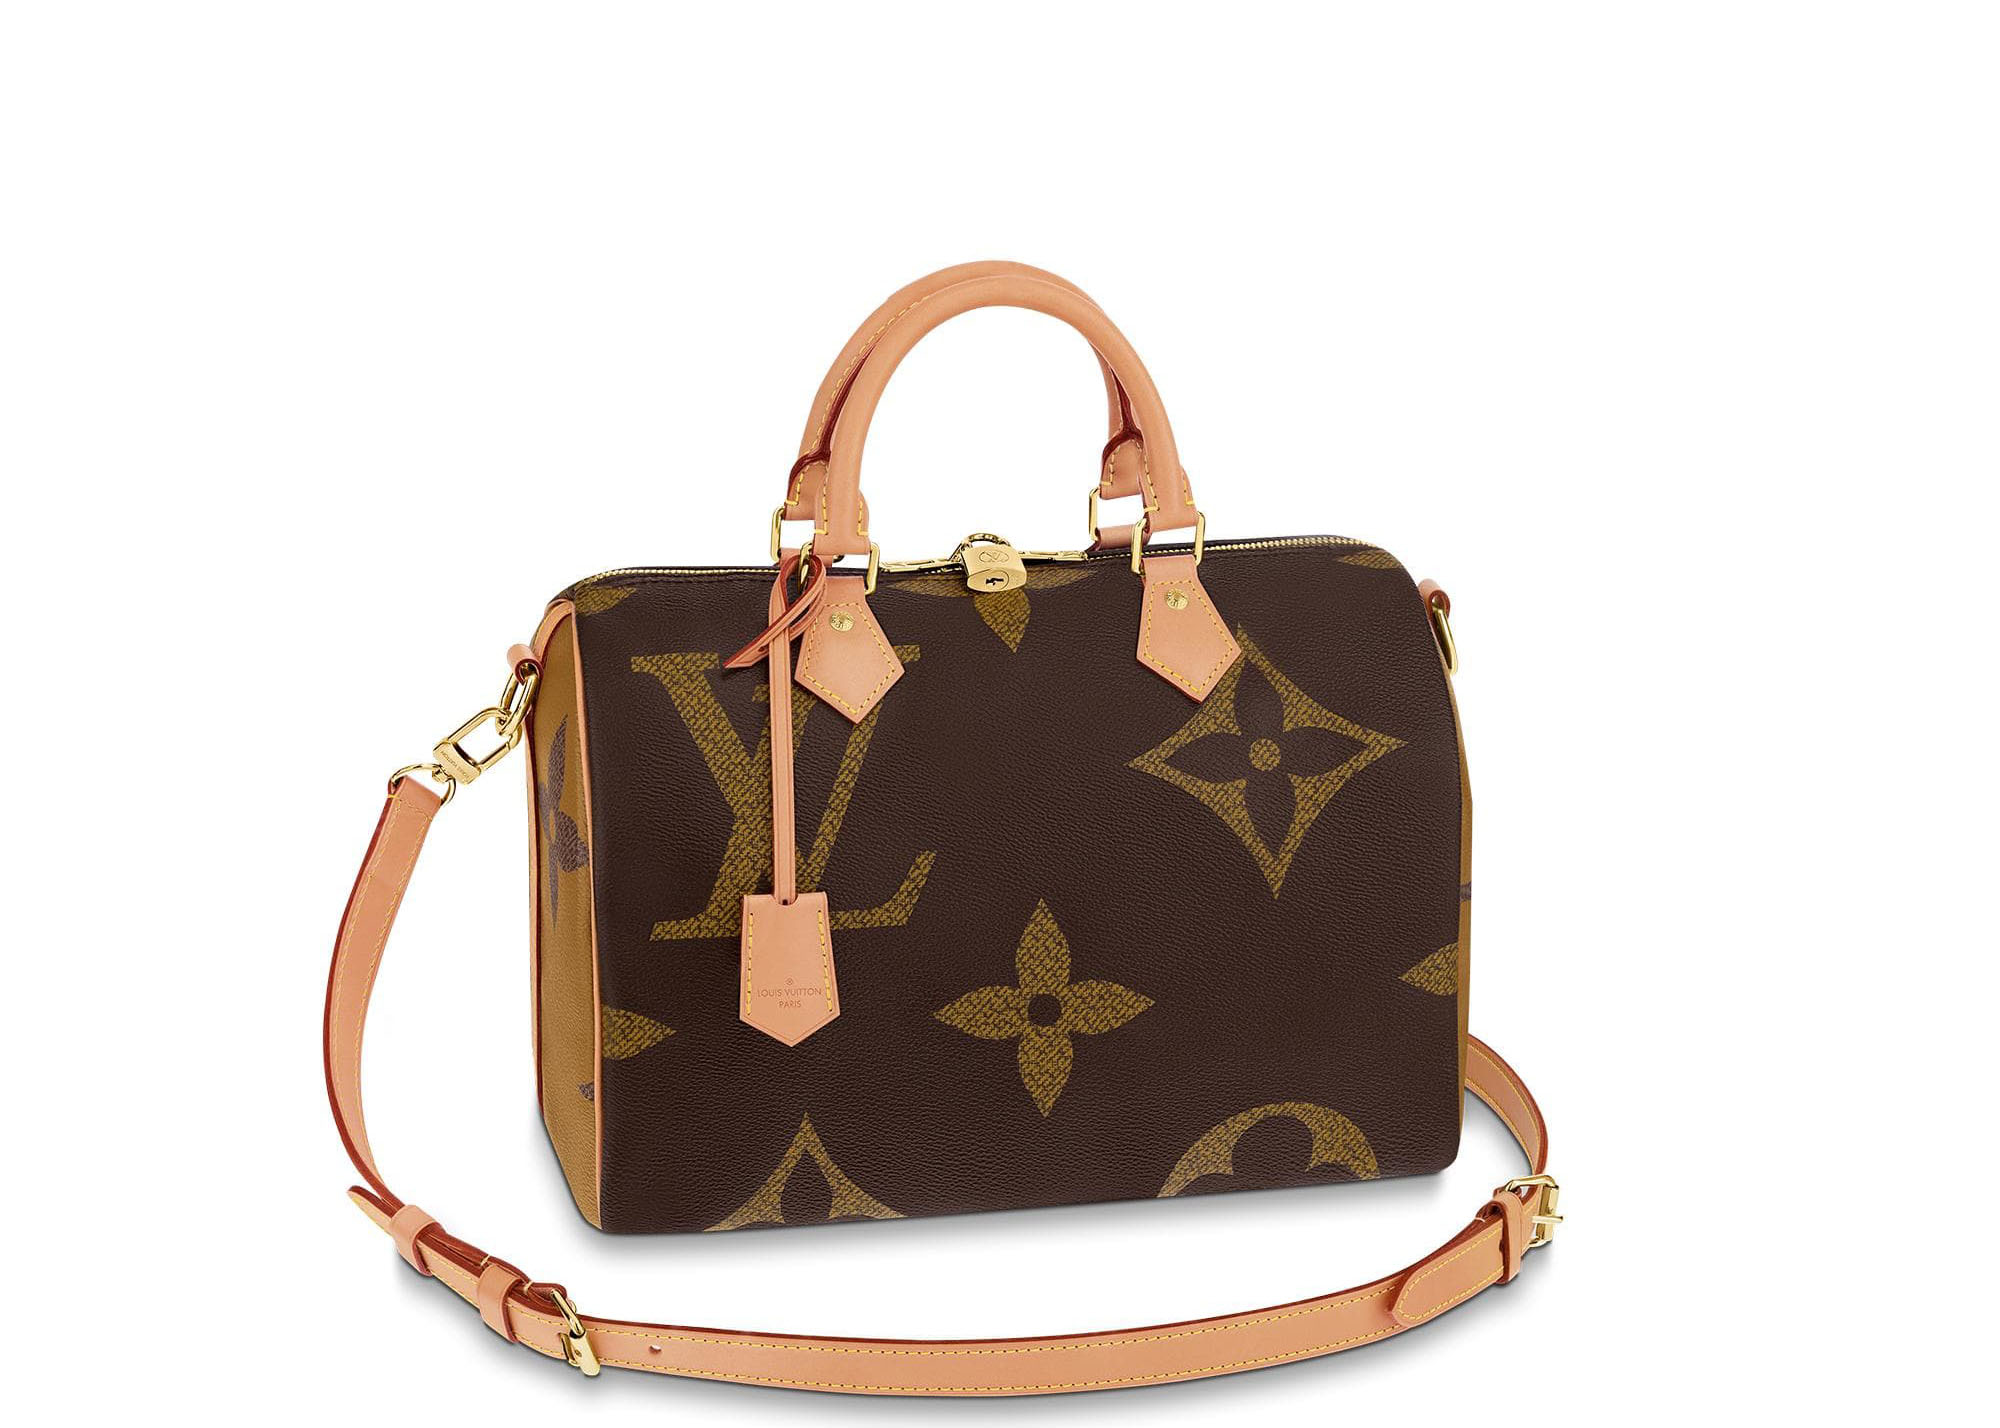 Louis Vuitton Speedy Bandouliere Monogram Giant Reverse 30 Brown